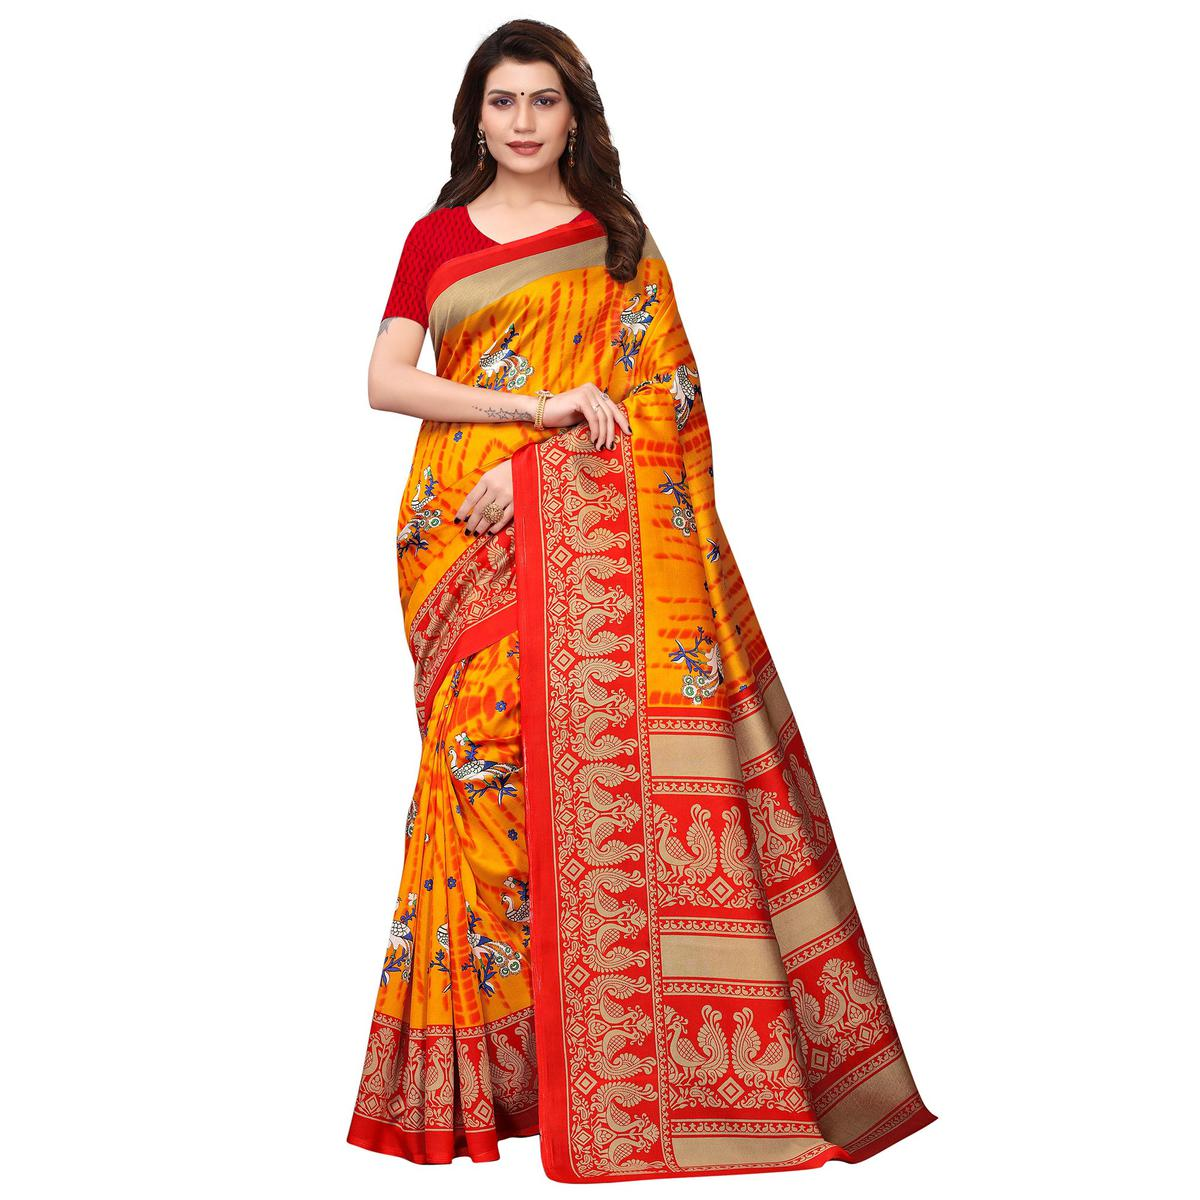 Marvellous Orange Colored Festive Wear Printed Art Silk Saree